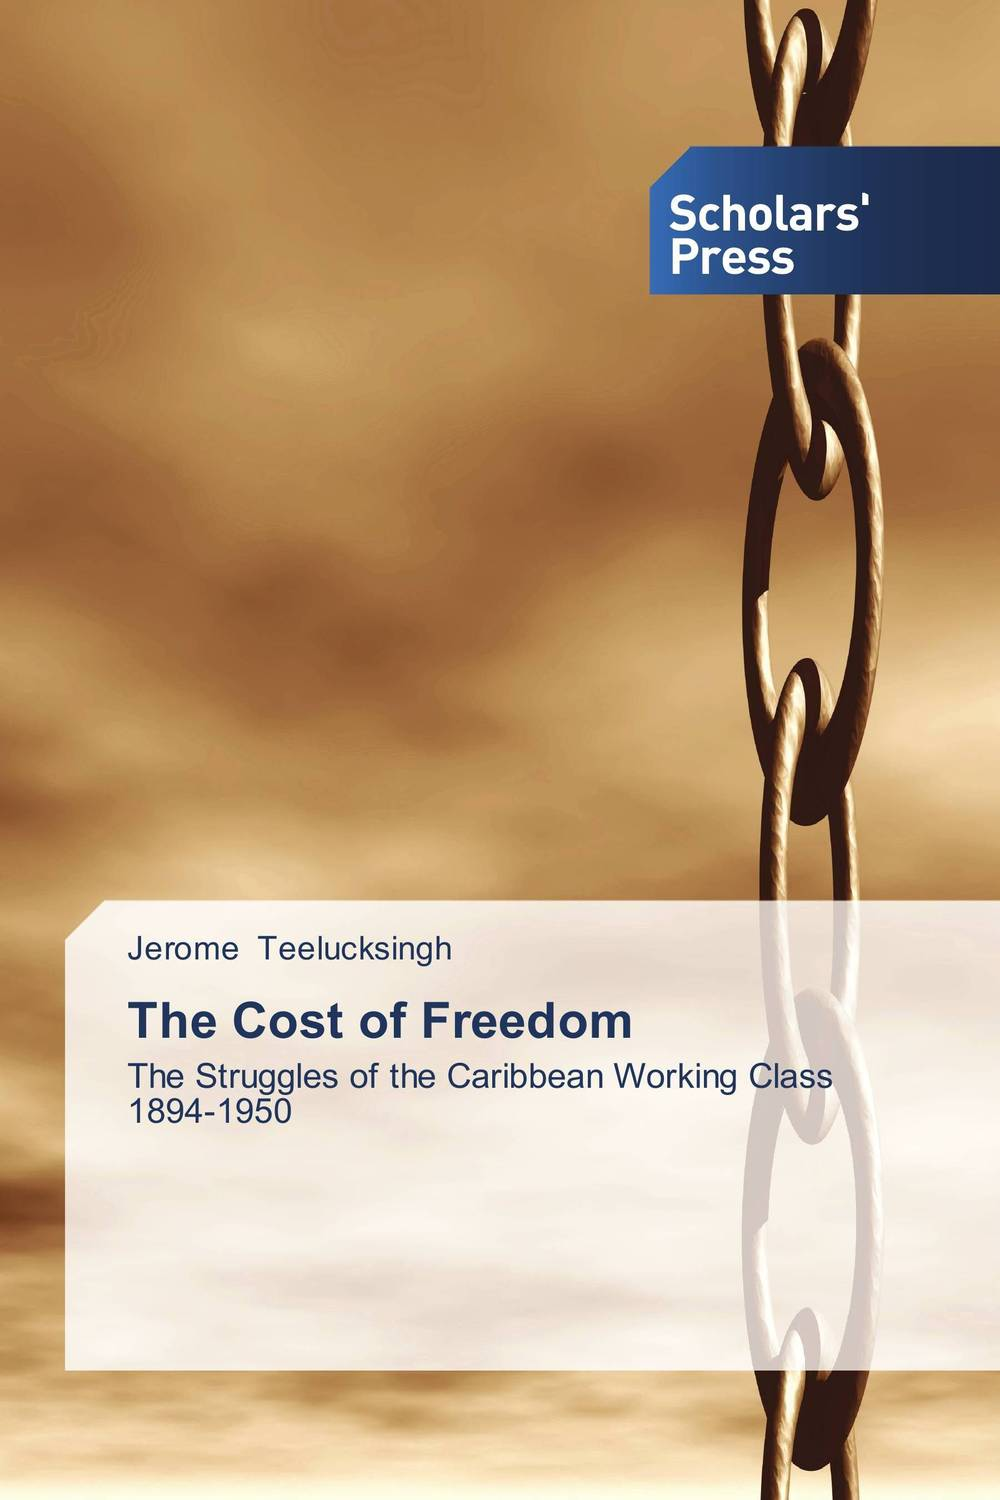 The Cost of Freedom trade unionism